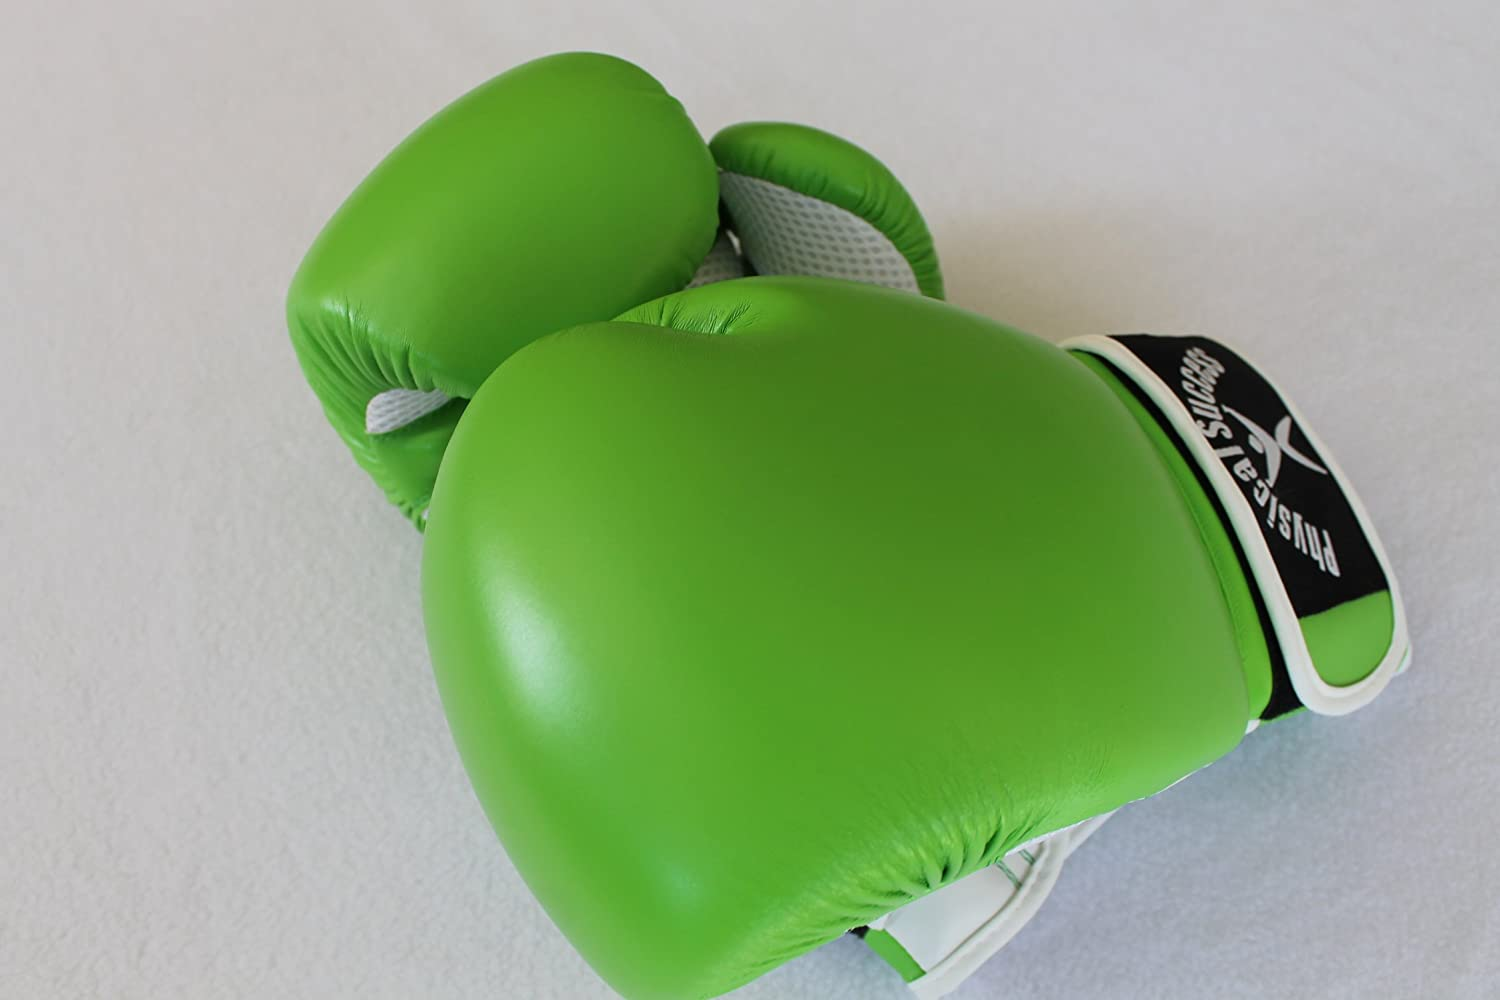 Purple Boxing Gloves 12oz size Red Boxing Gloves Lime Green Boxing Gloves by Physical Success